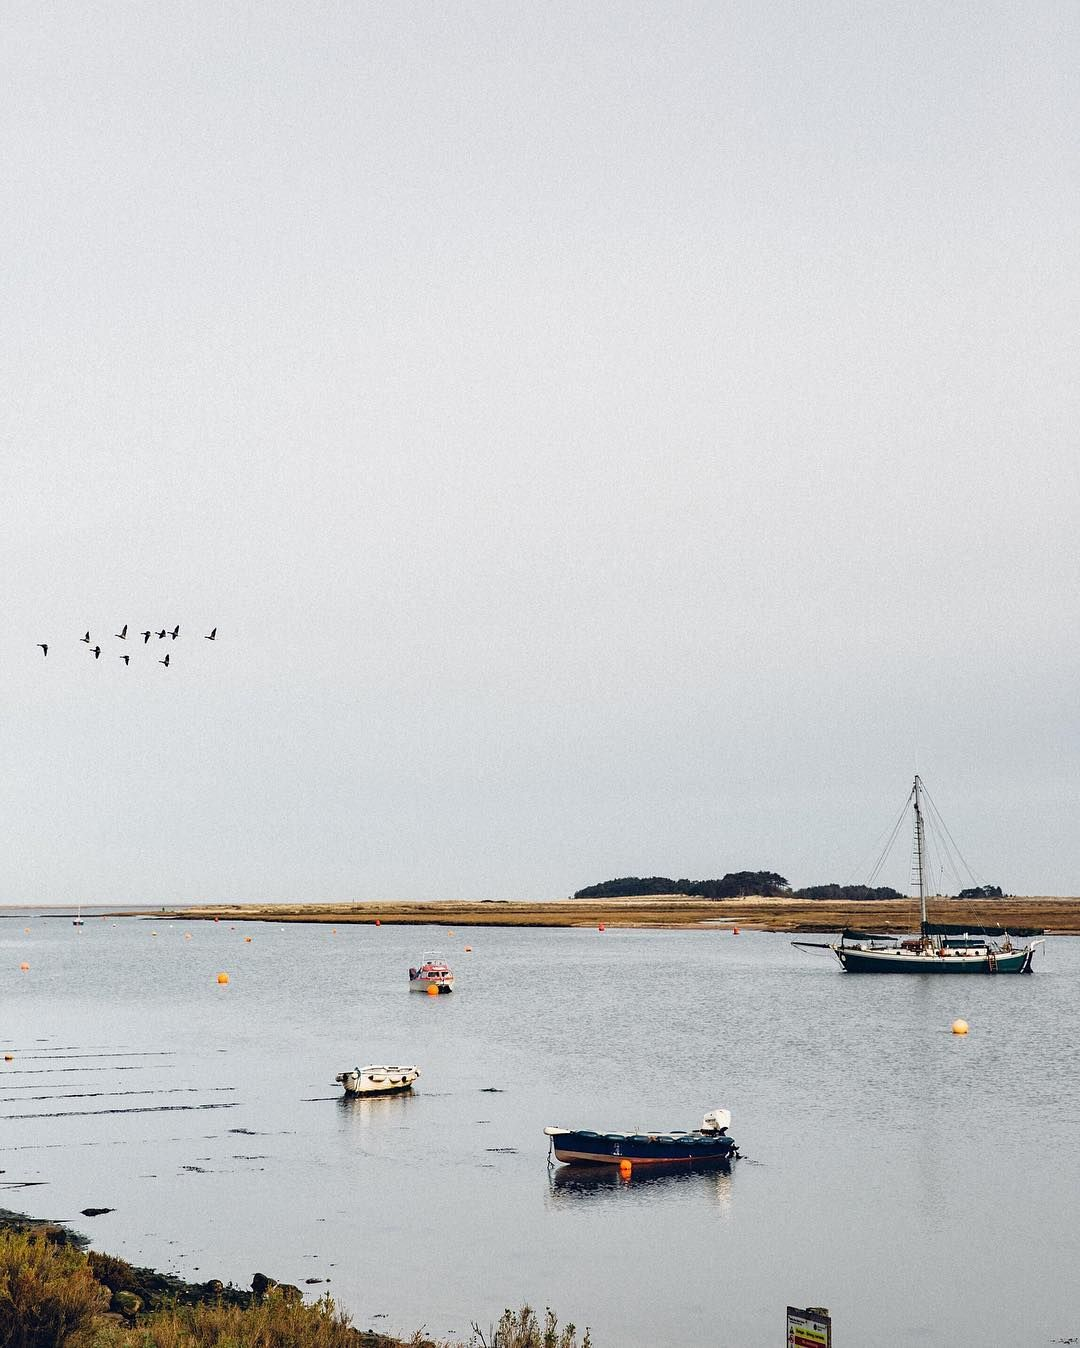 There is a breathtaking stillness and simplicity surrounding the Norfolk coast that brings such a sense of calm.